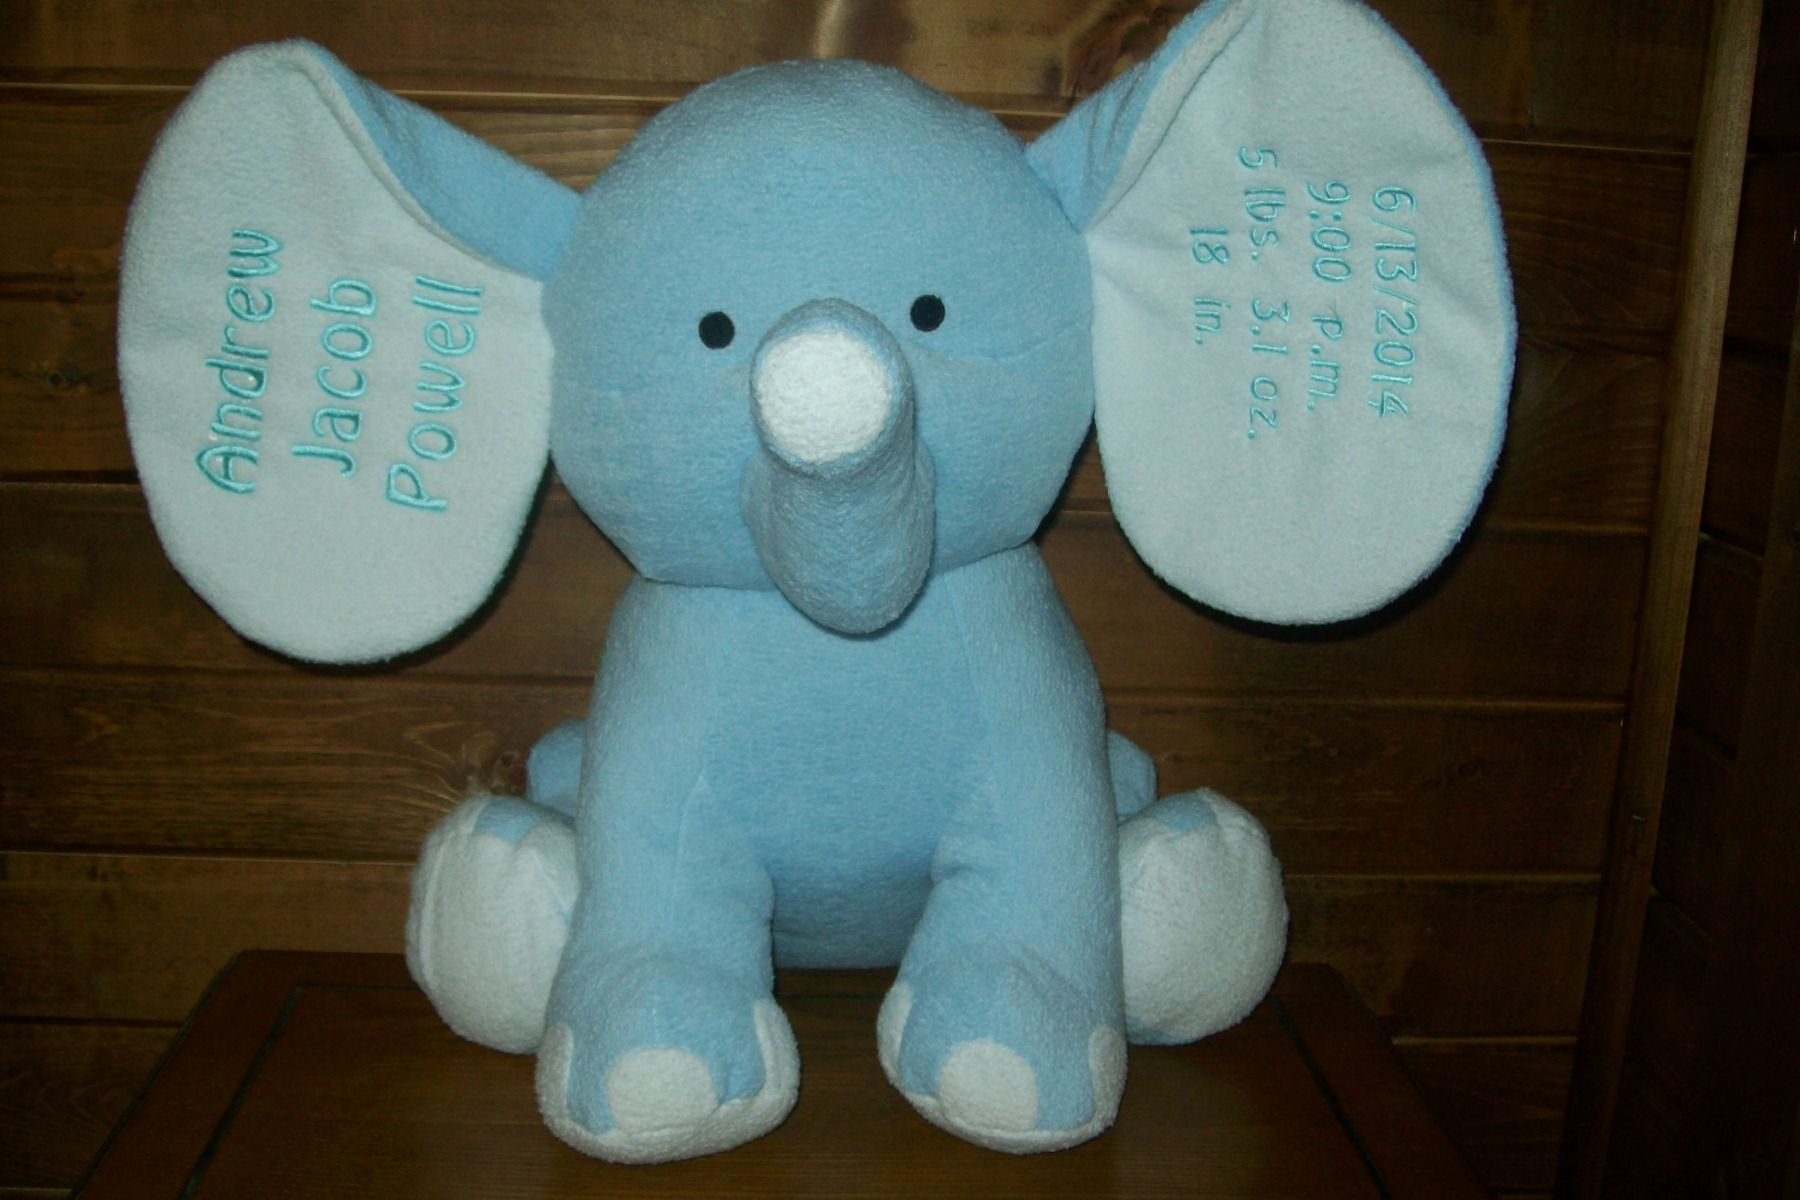 Personalized plush elephant baby gift 4295 with free shipping personalized plush elephant baby gift 4295 with free shipping available at personalizeyouritems negle Image collections